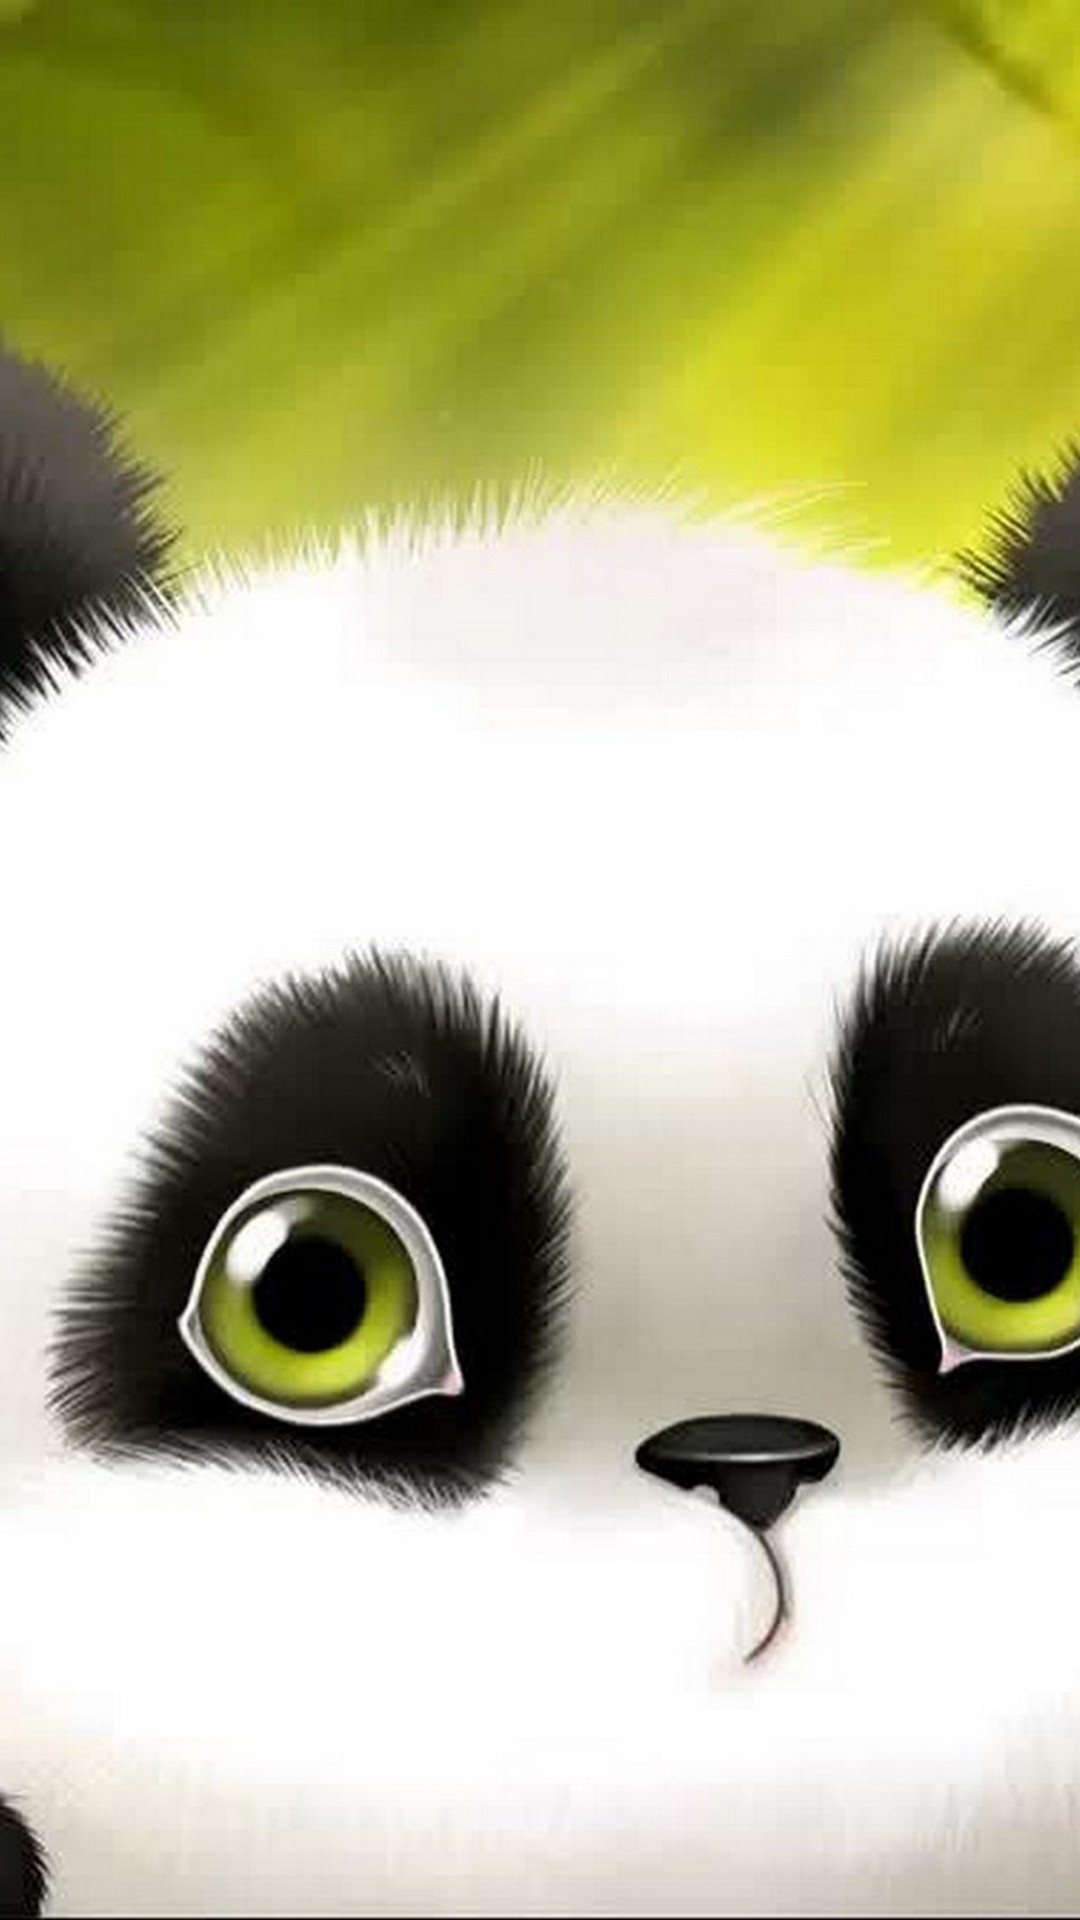 Panda Cartoon Wallpaper Posted By Christopher Simpson